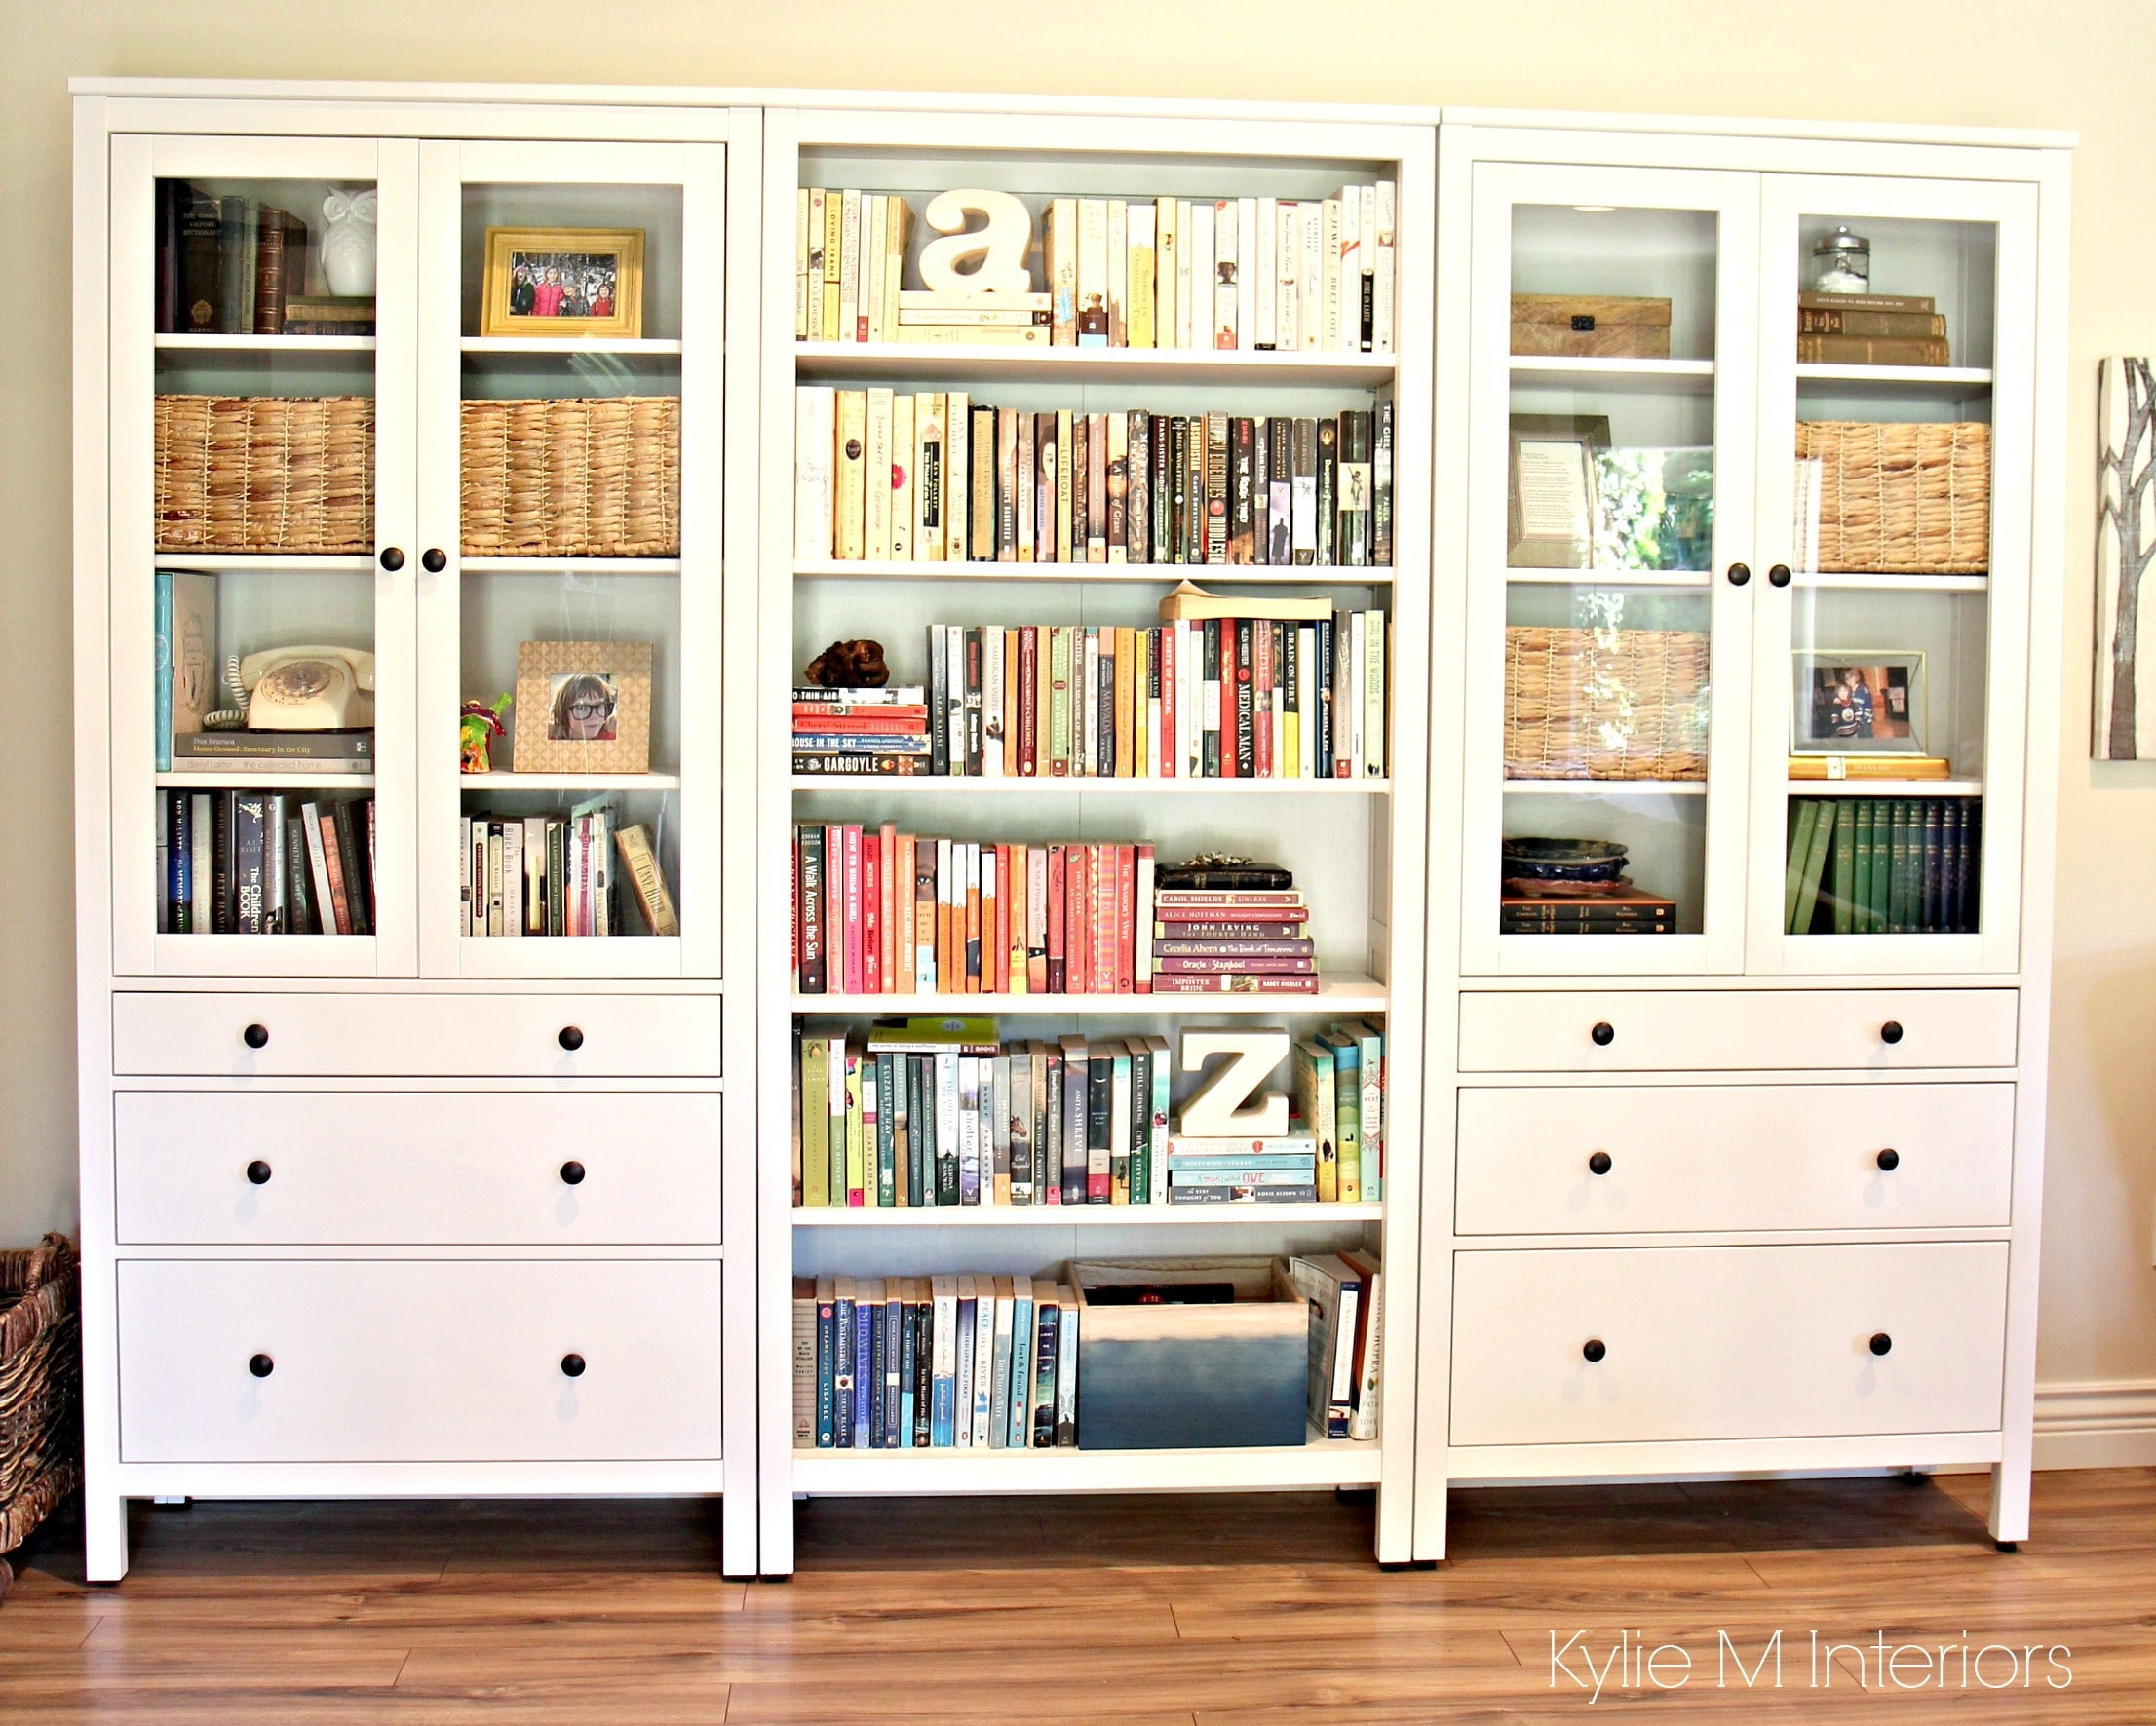 ikea hemnes bookcase with colour coordinated books in. Black Bedroom Furniture Sets. Home Design Ideas